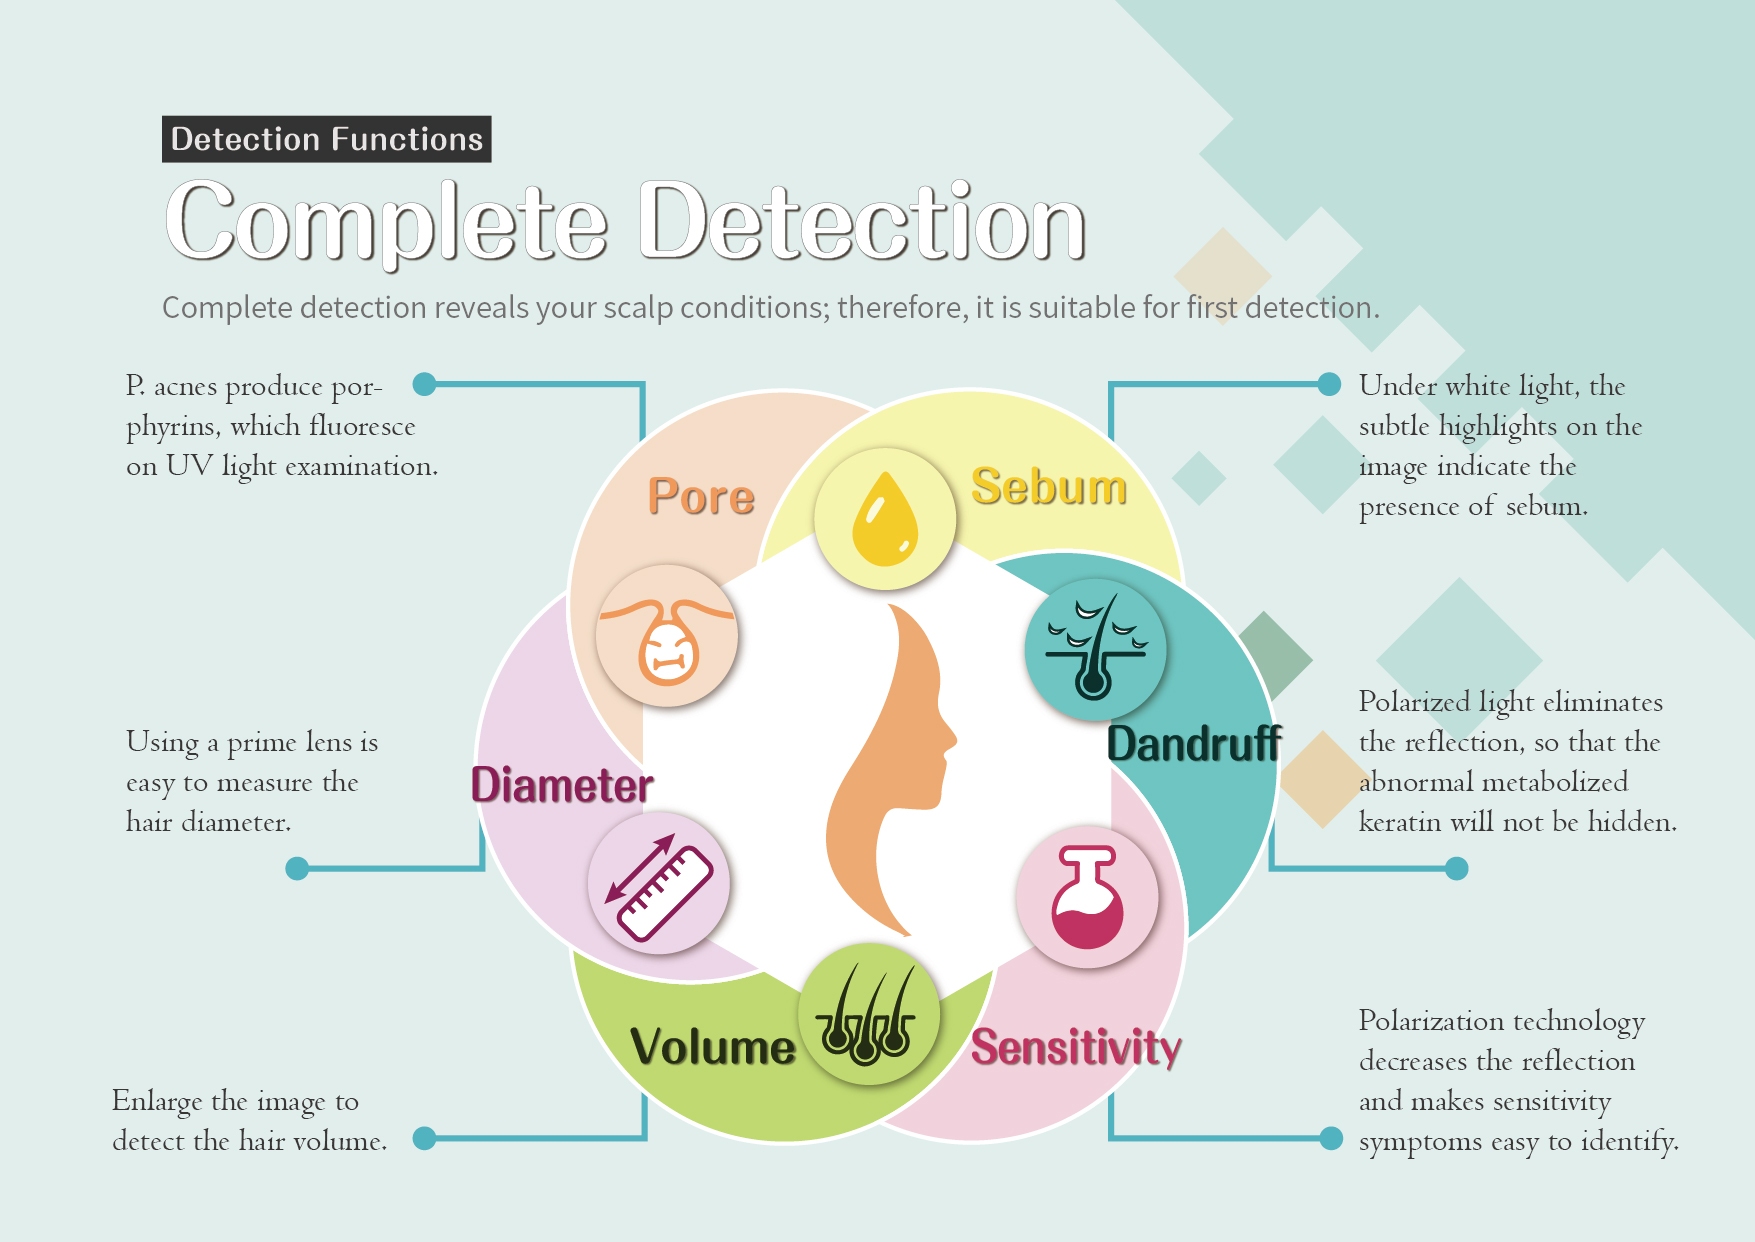 Complete Detection: Complete detection reveals your scalp conditions; therefore, it is suitable for first detection.